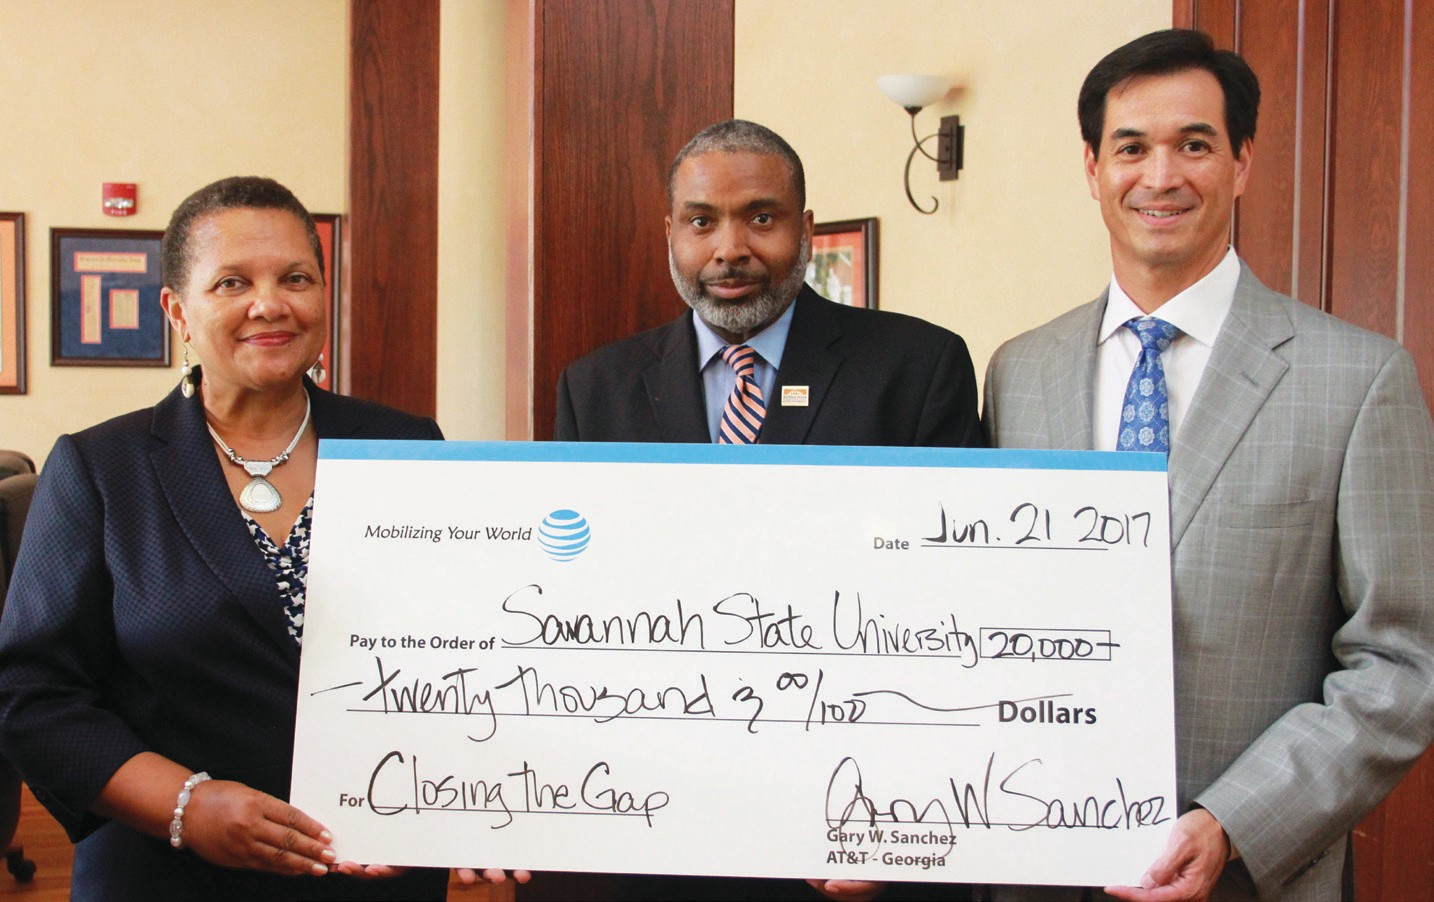 L-R: Cheryl D. Dozier, President of Savannah State University; Phillip D. Adams, Vice President for University Advancement and Executive Director of the SSU Foundation Inc.; and Gary Sanchez, Regional Director of External Affairs AT&T Georgia.